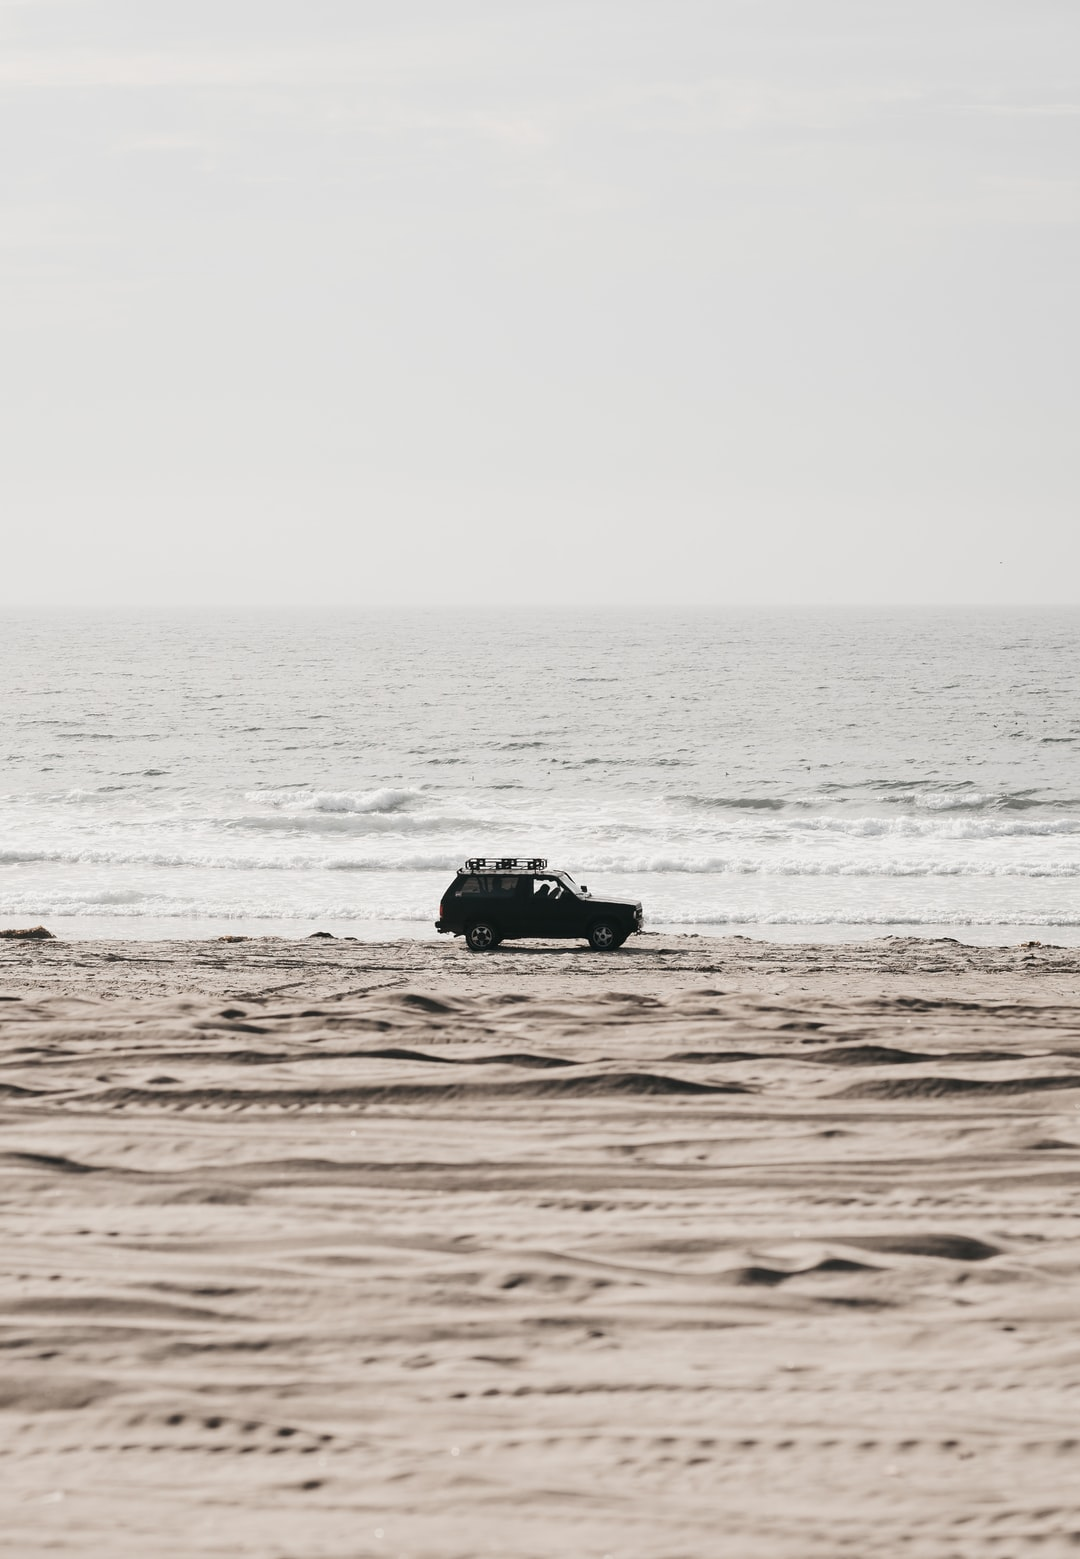 It was the day before the Baja 1000 which my brother had decided to race on a whim last year. We were finishing some final tune ups on his quad and headed down to a track by the beach to do some final testing and to shoot some photos. He took a quick pass down the shoreline and then this vehicle slowly cruised into the frame. Not even sure if someone is driving? Take a look for yourself.